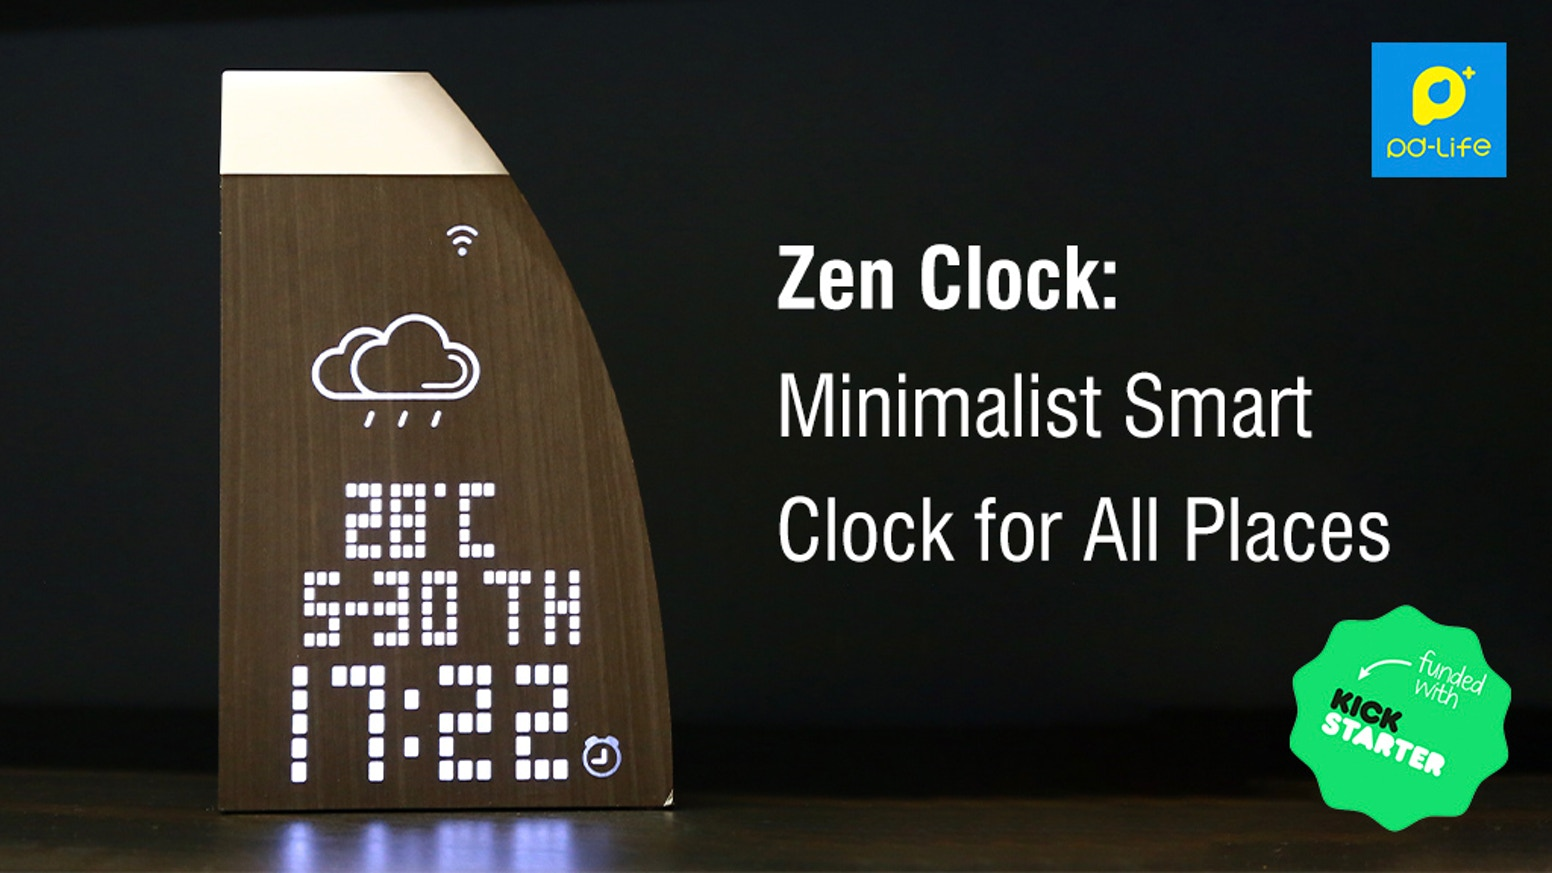 A minimalist smart clock that displays time, date and weather info while making any place look good